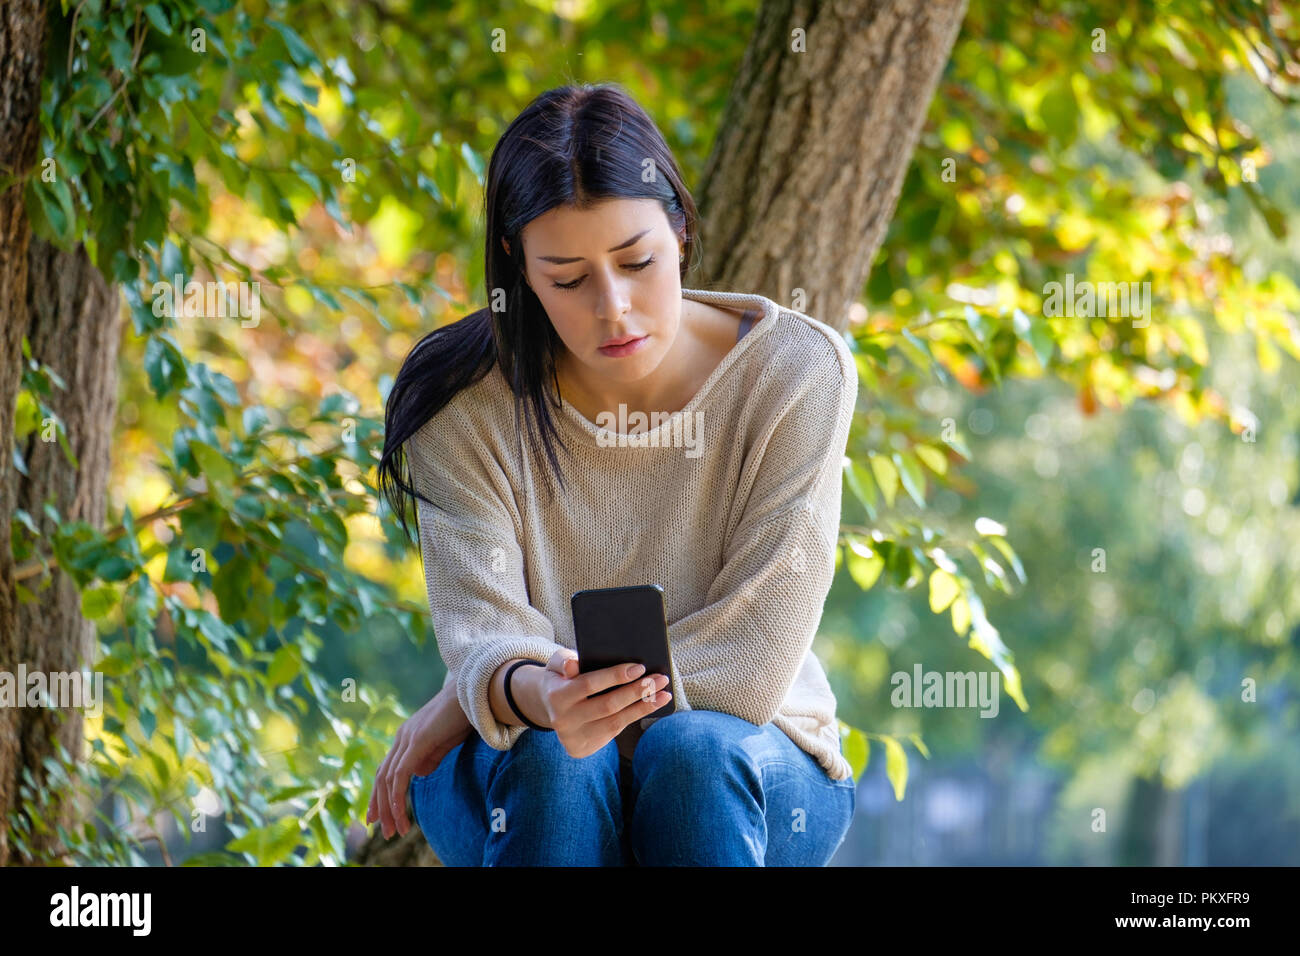 Sad girl watching her smartphone and feeling alone waiting social notifications - Stock Image